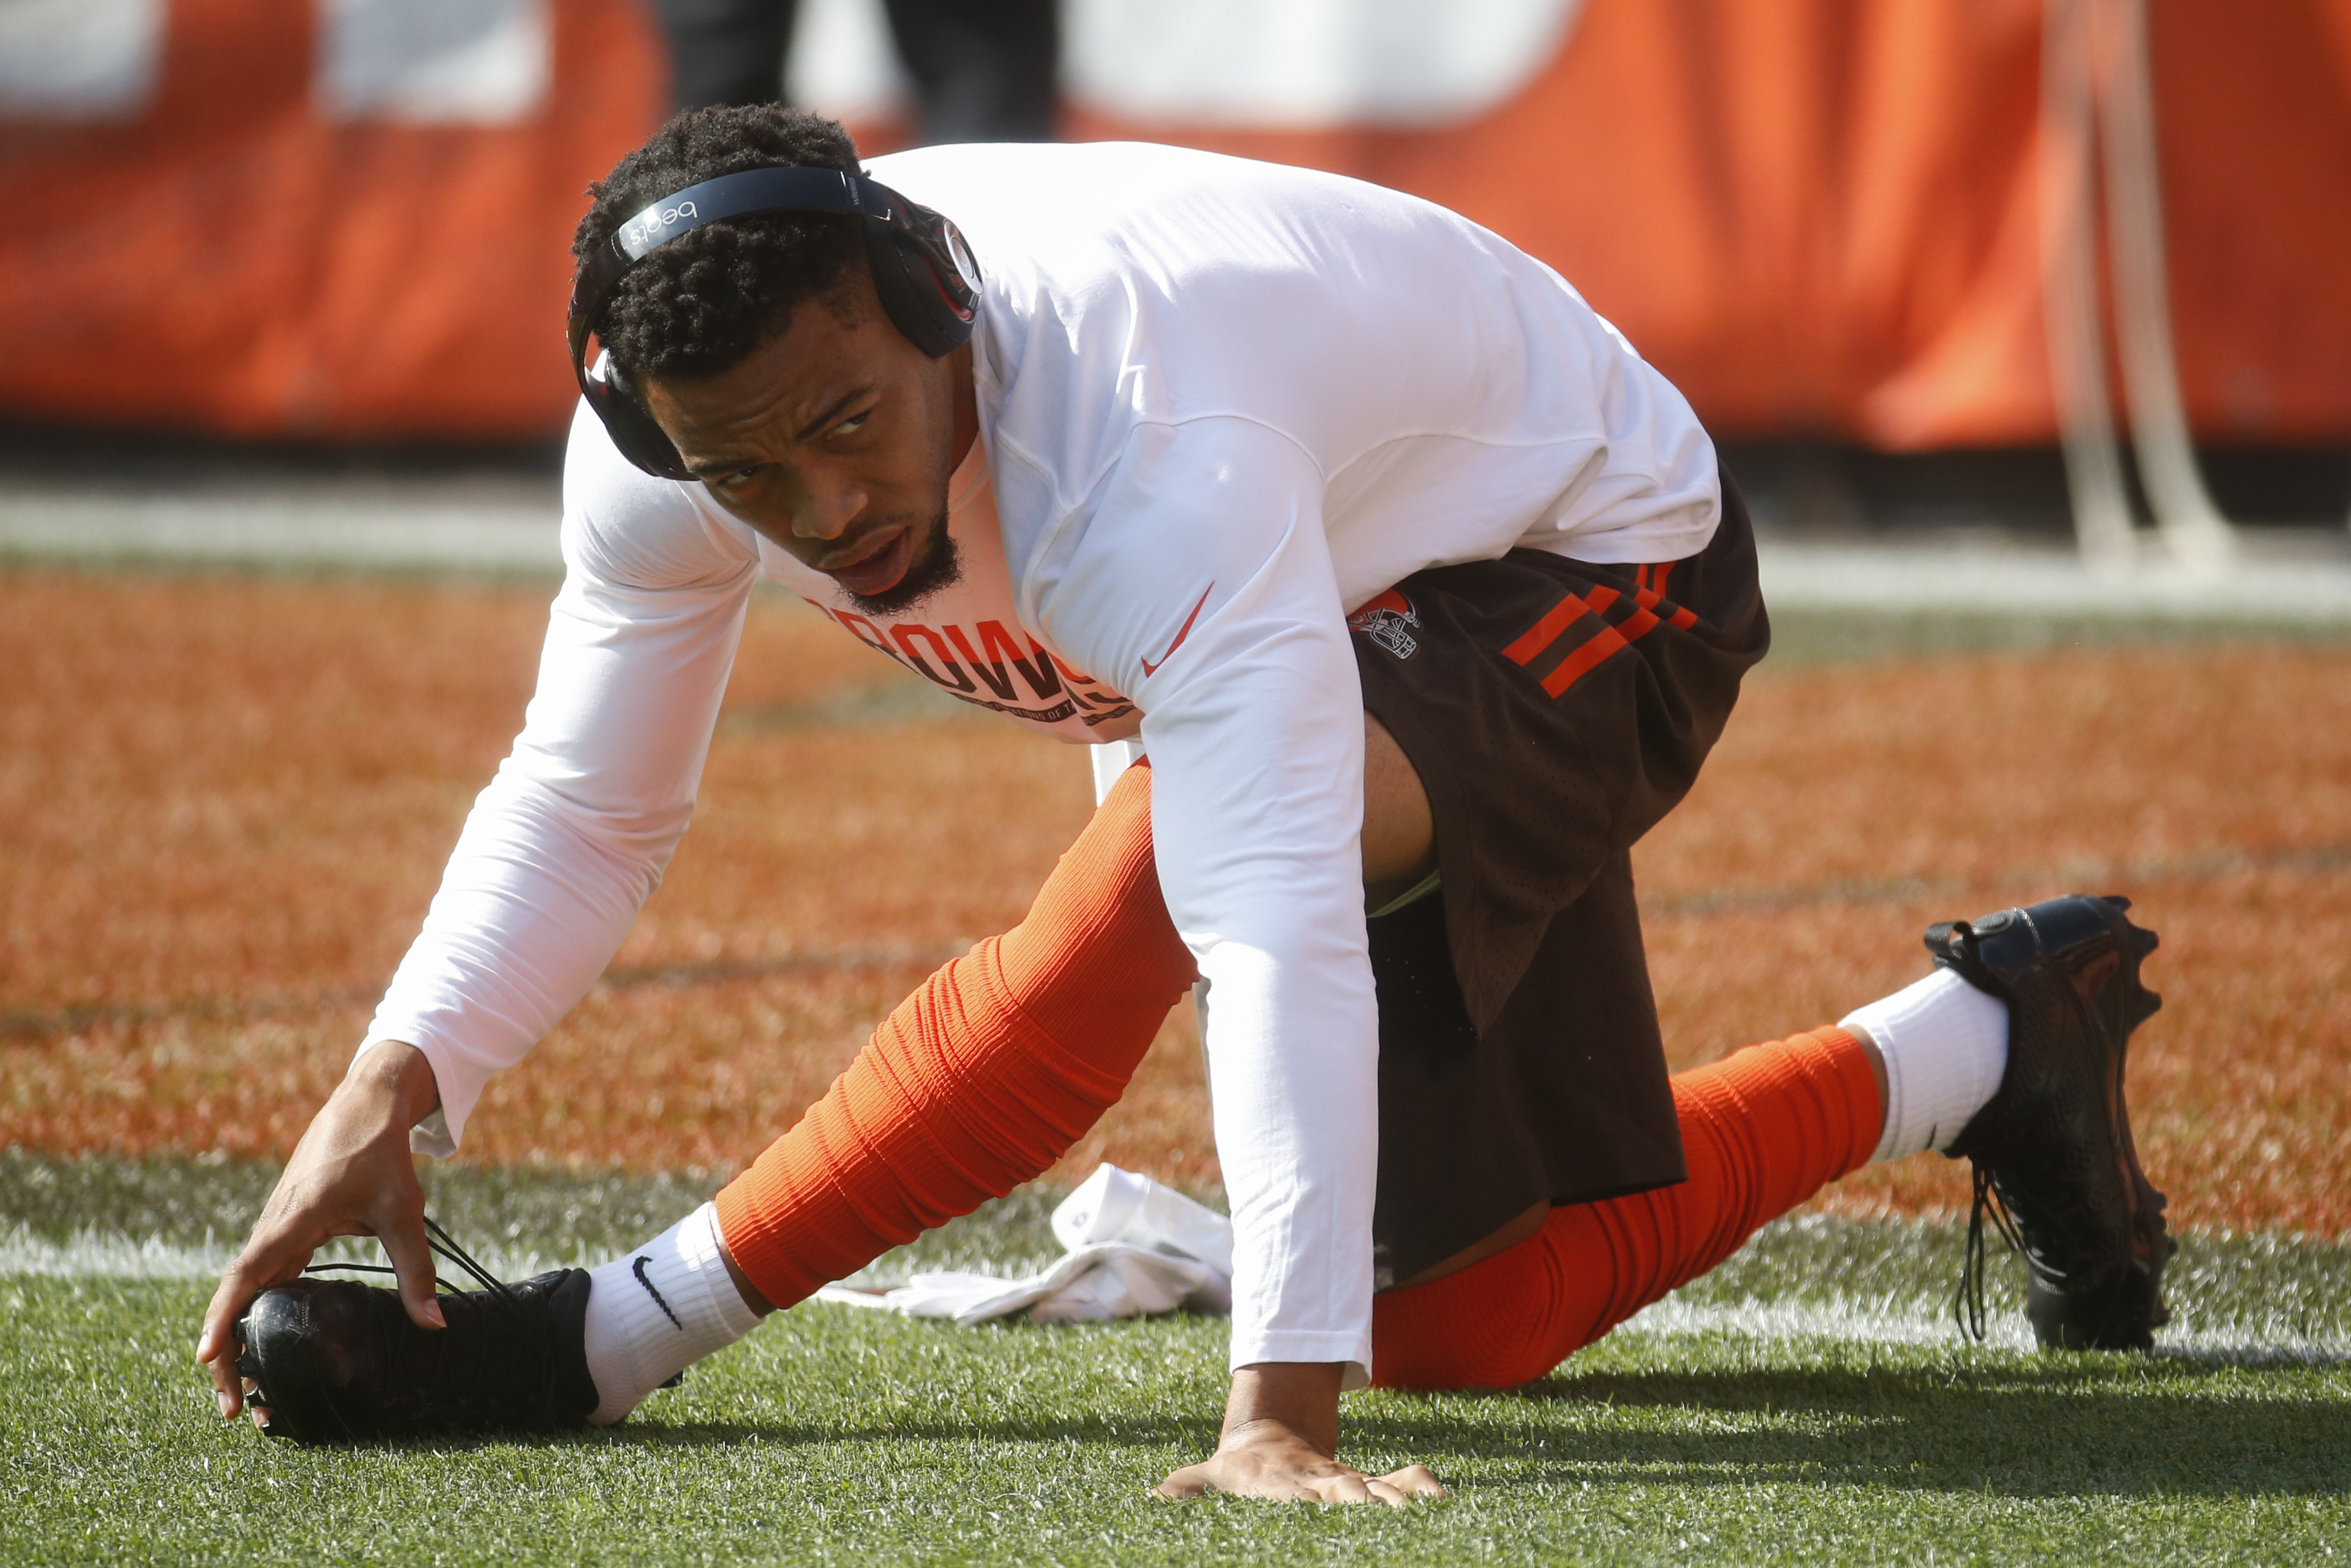 FILE- In this Sunday, Sept. 18, 2016, file photo, Cleveland Browns cornerback Joe Haden stretches before an NFL football game against the Baltimore Ravens in Cleveland. Haden, who has a strained groin, may miss Sundays game at Miami.(AP Photo/Ron Schwane,